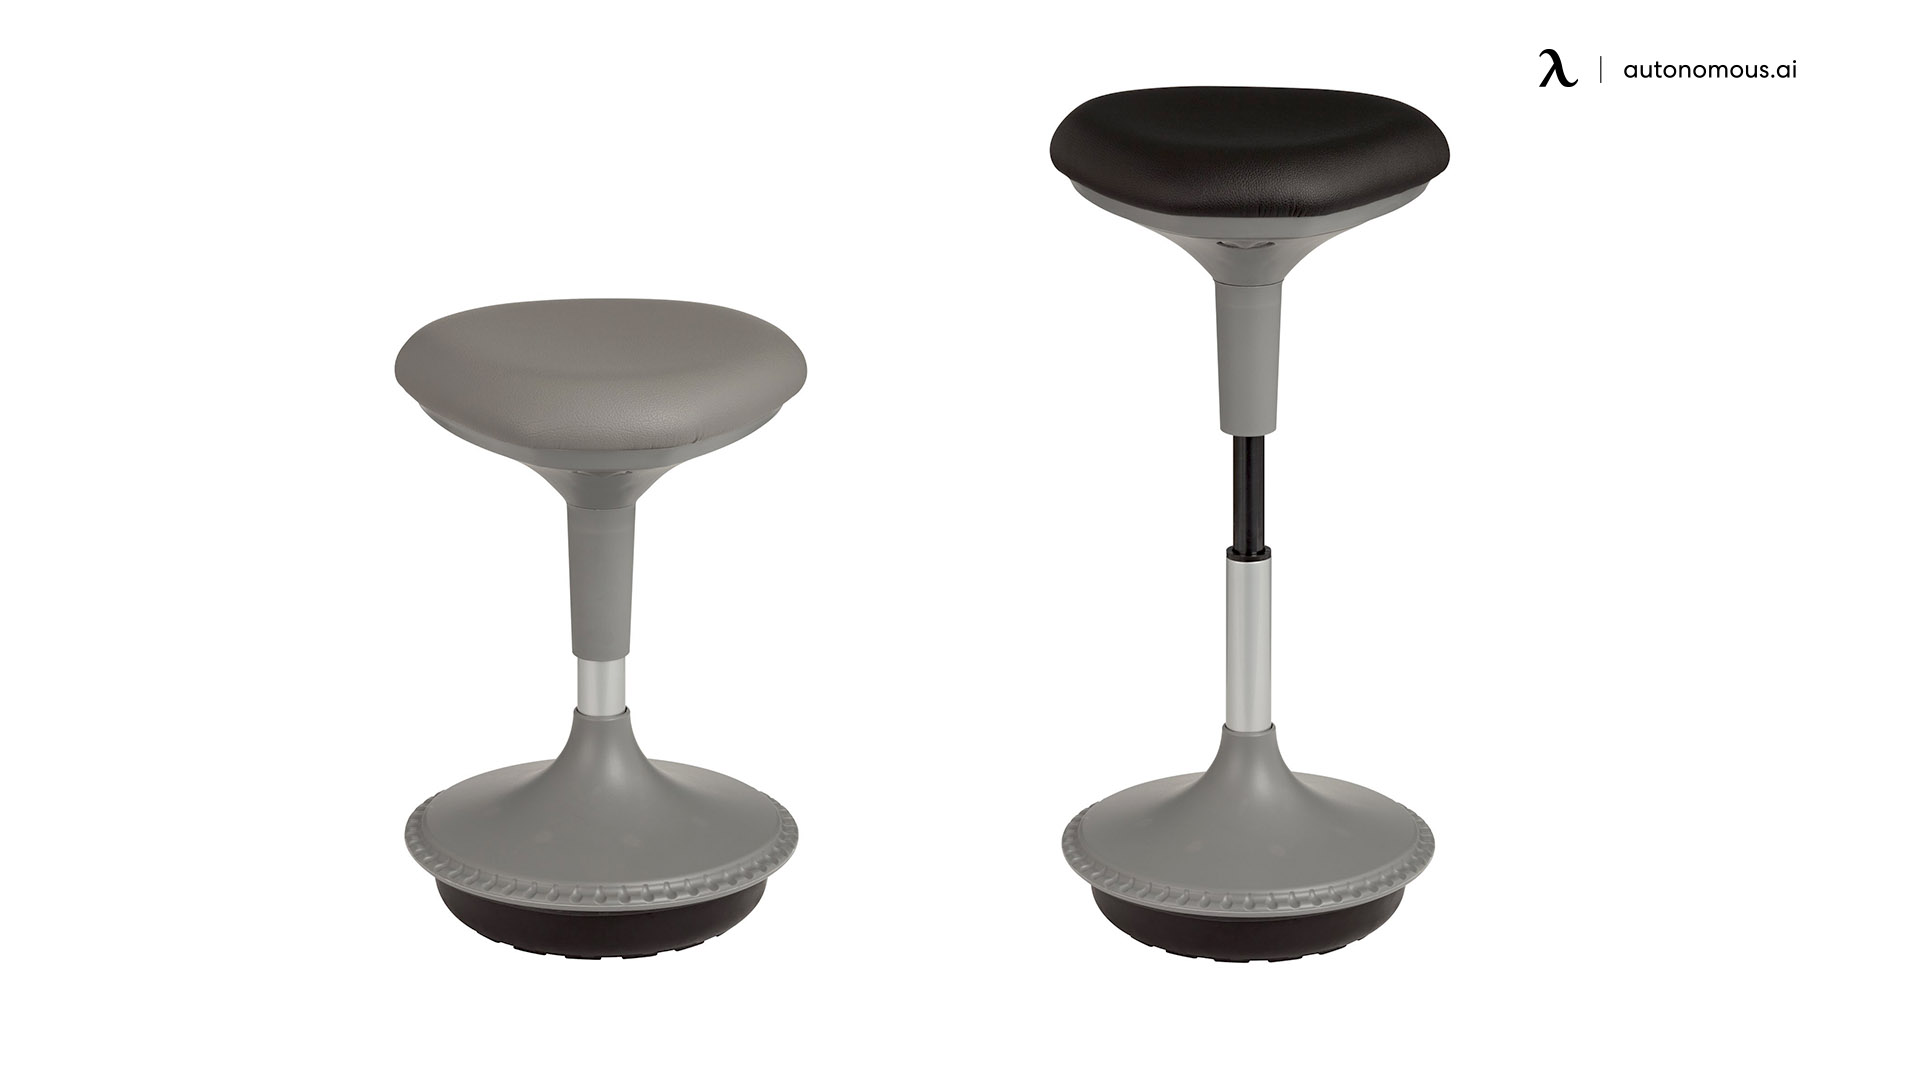 Adjustable Height Office Stool from the Learniture Store